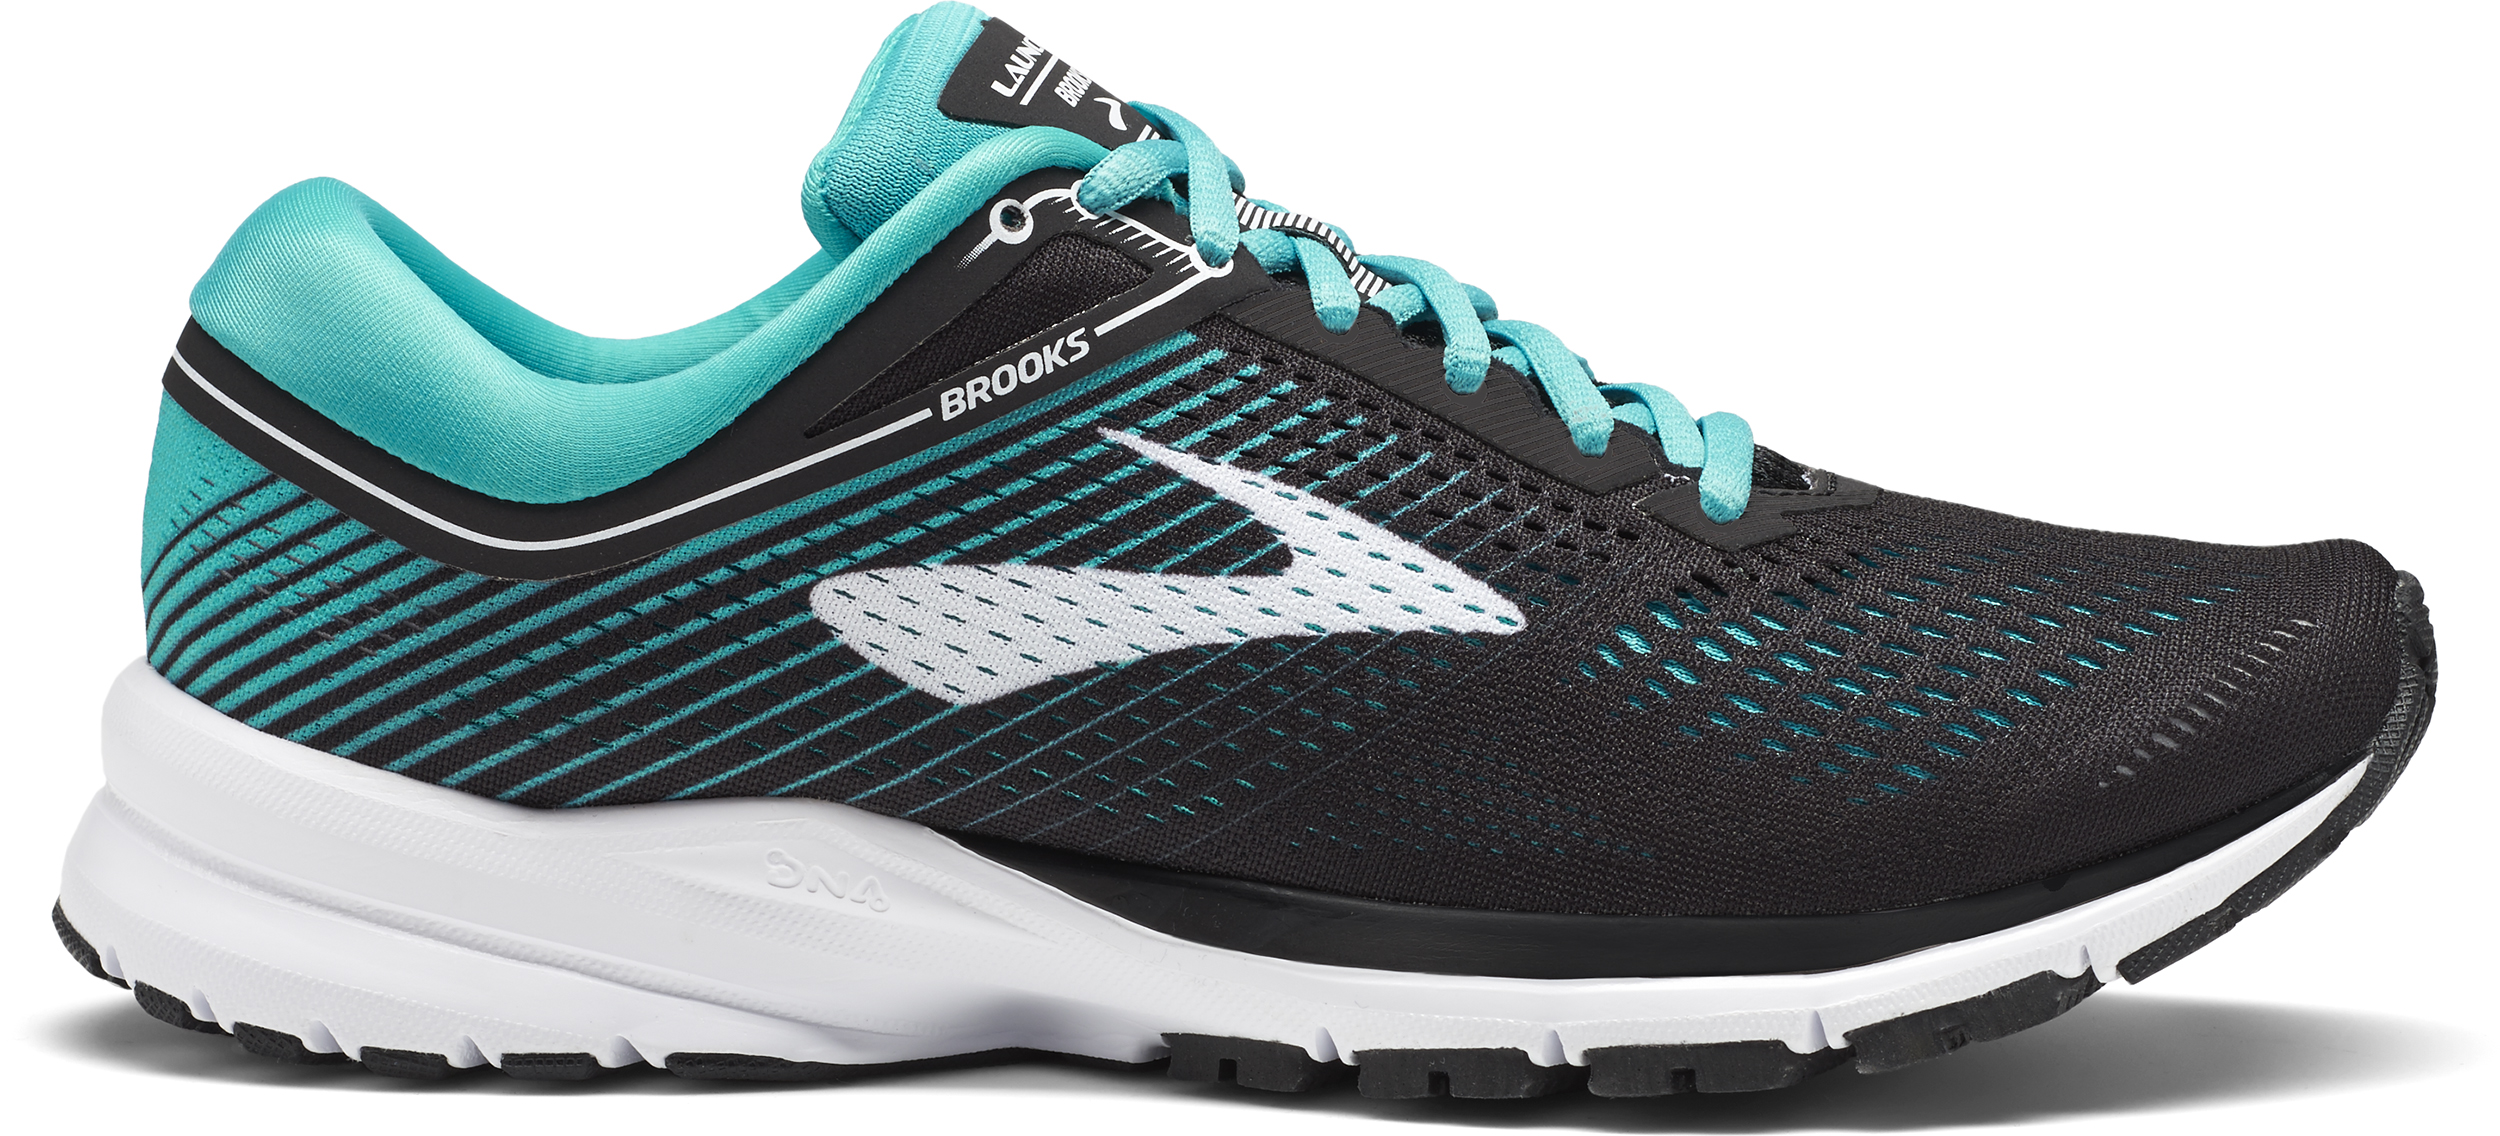 5f2a79e8dc0 Brooks Launch 5 Road Running Shoes - Women s